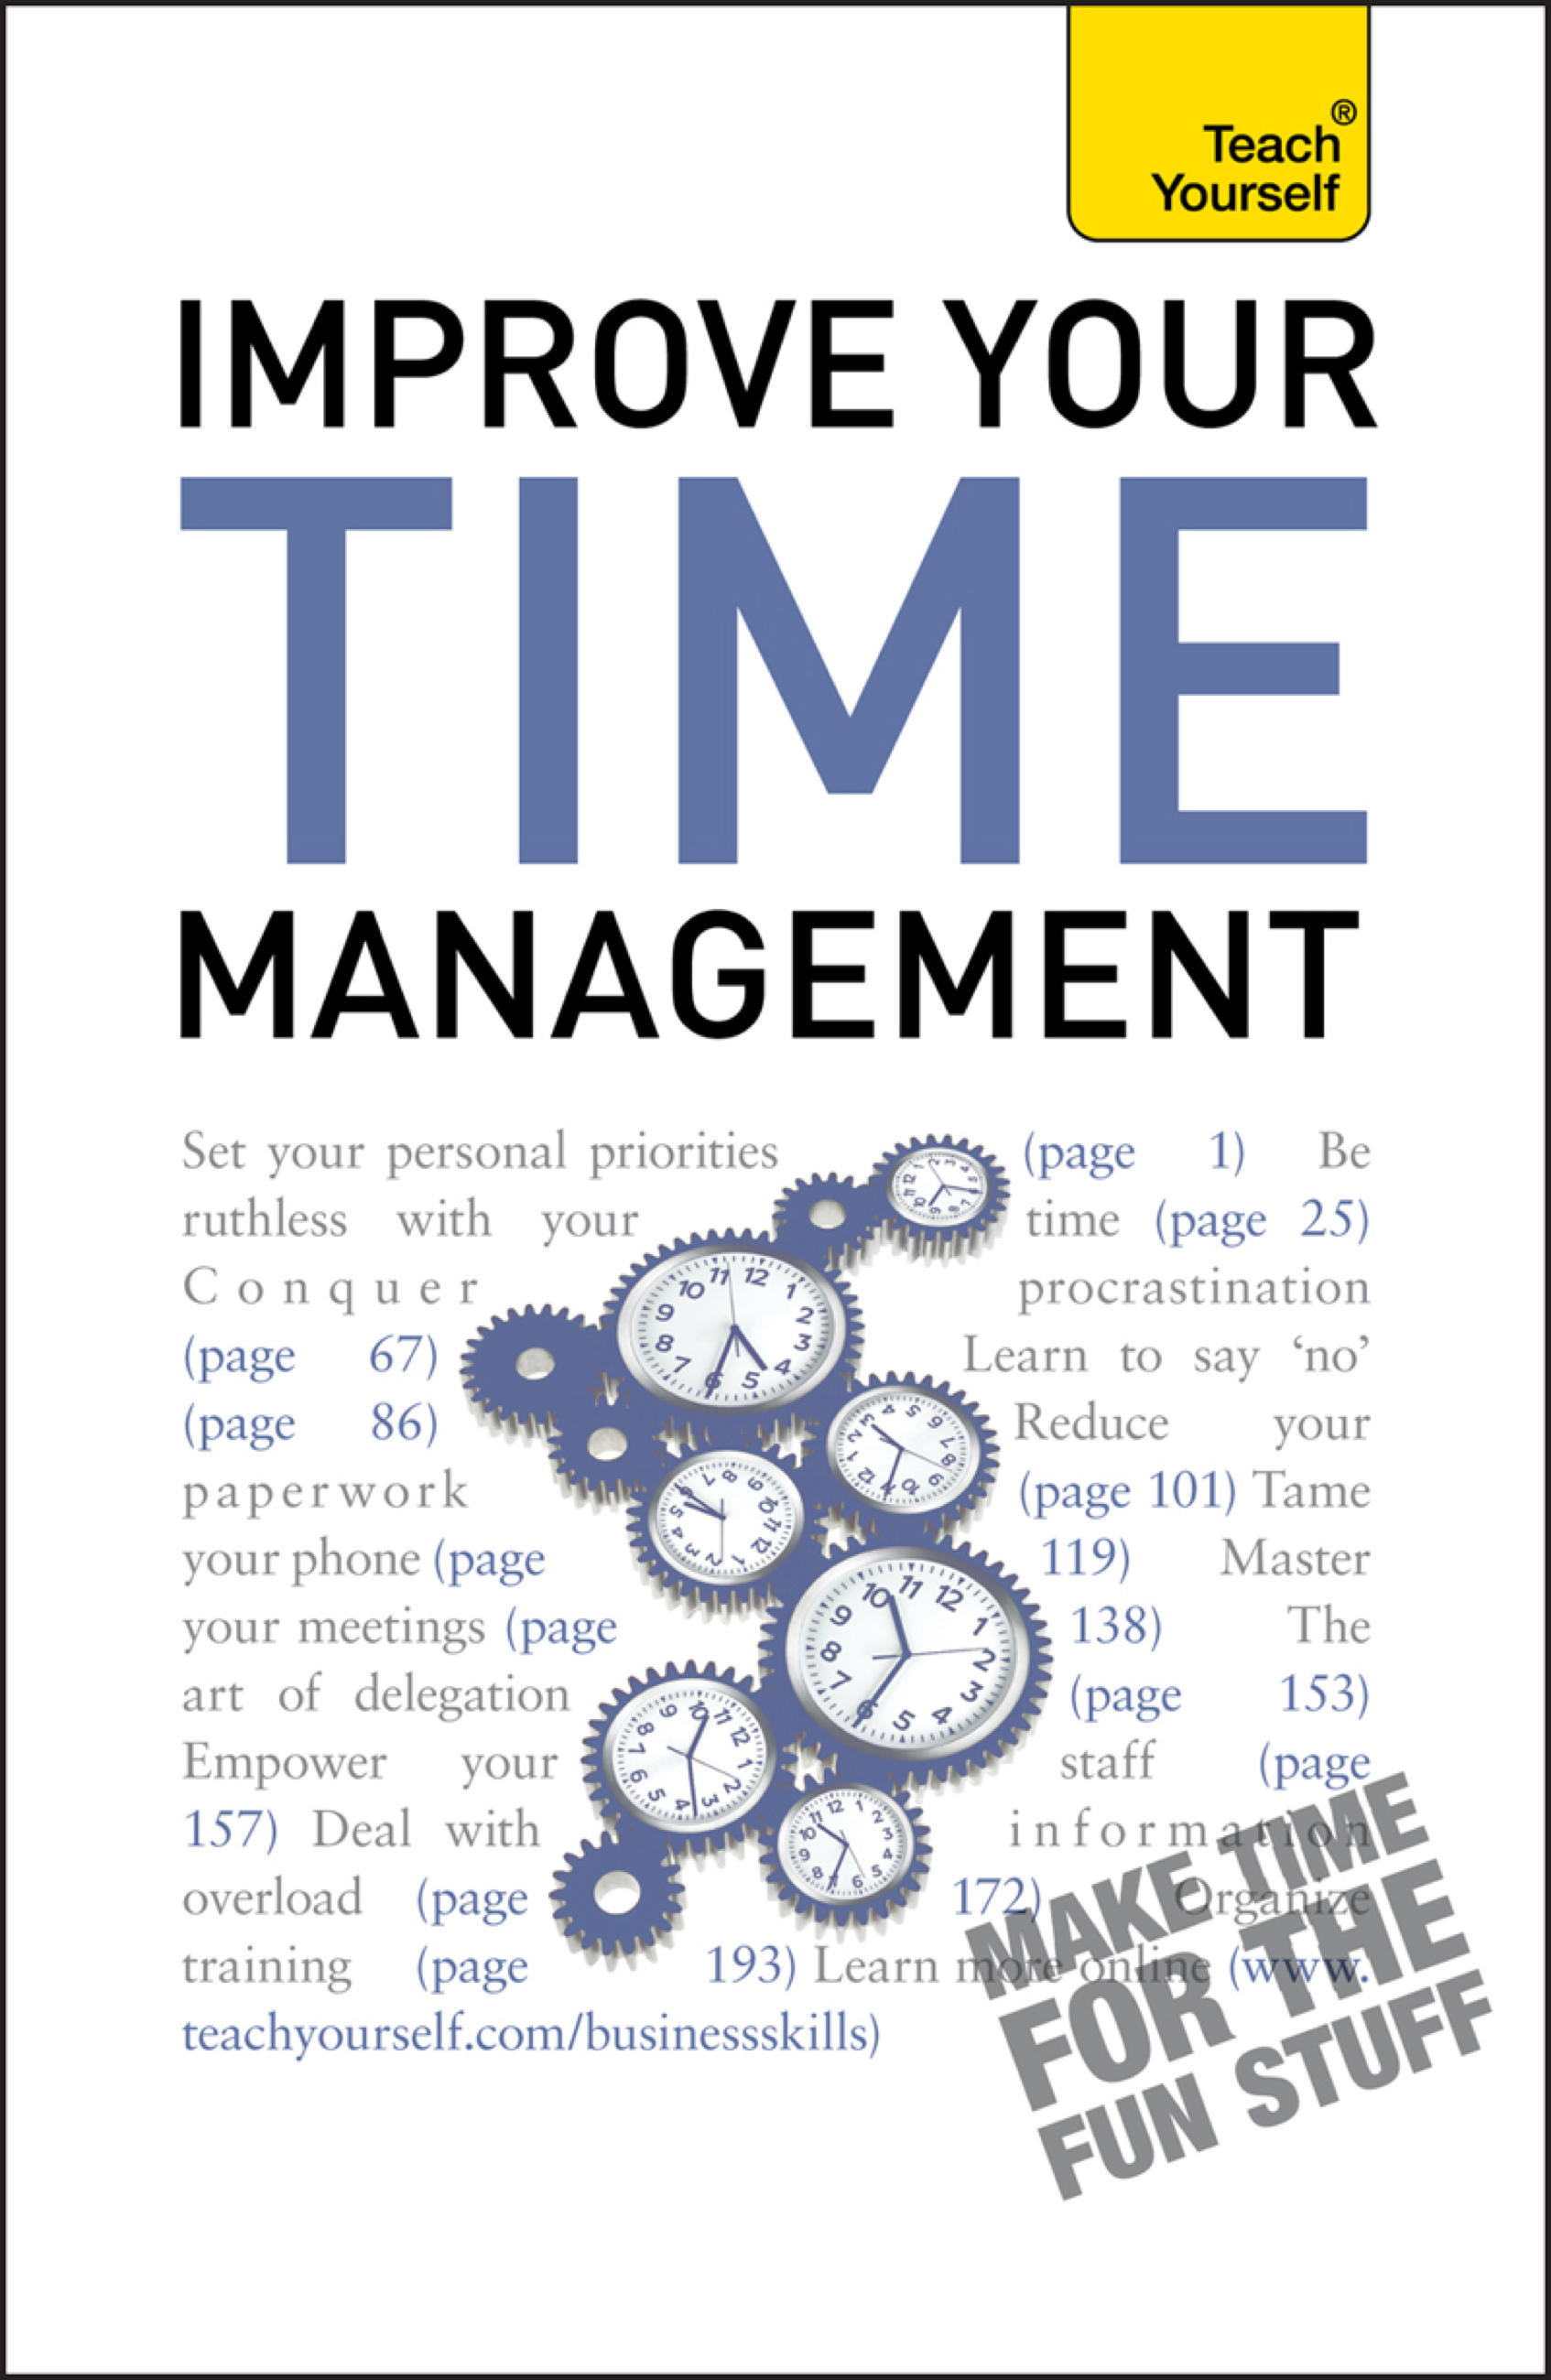 Download Ebook Improve Your Time Management: Teach Yourself by Polly Bird Pdf